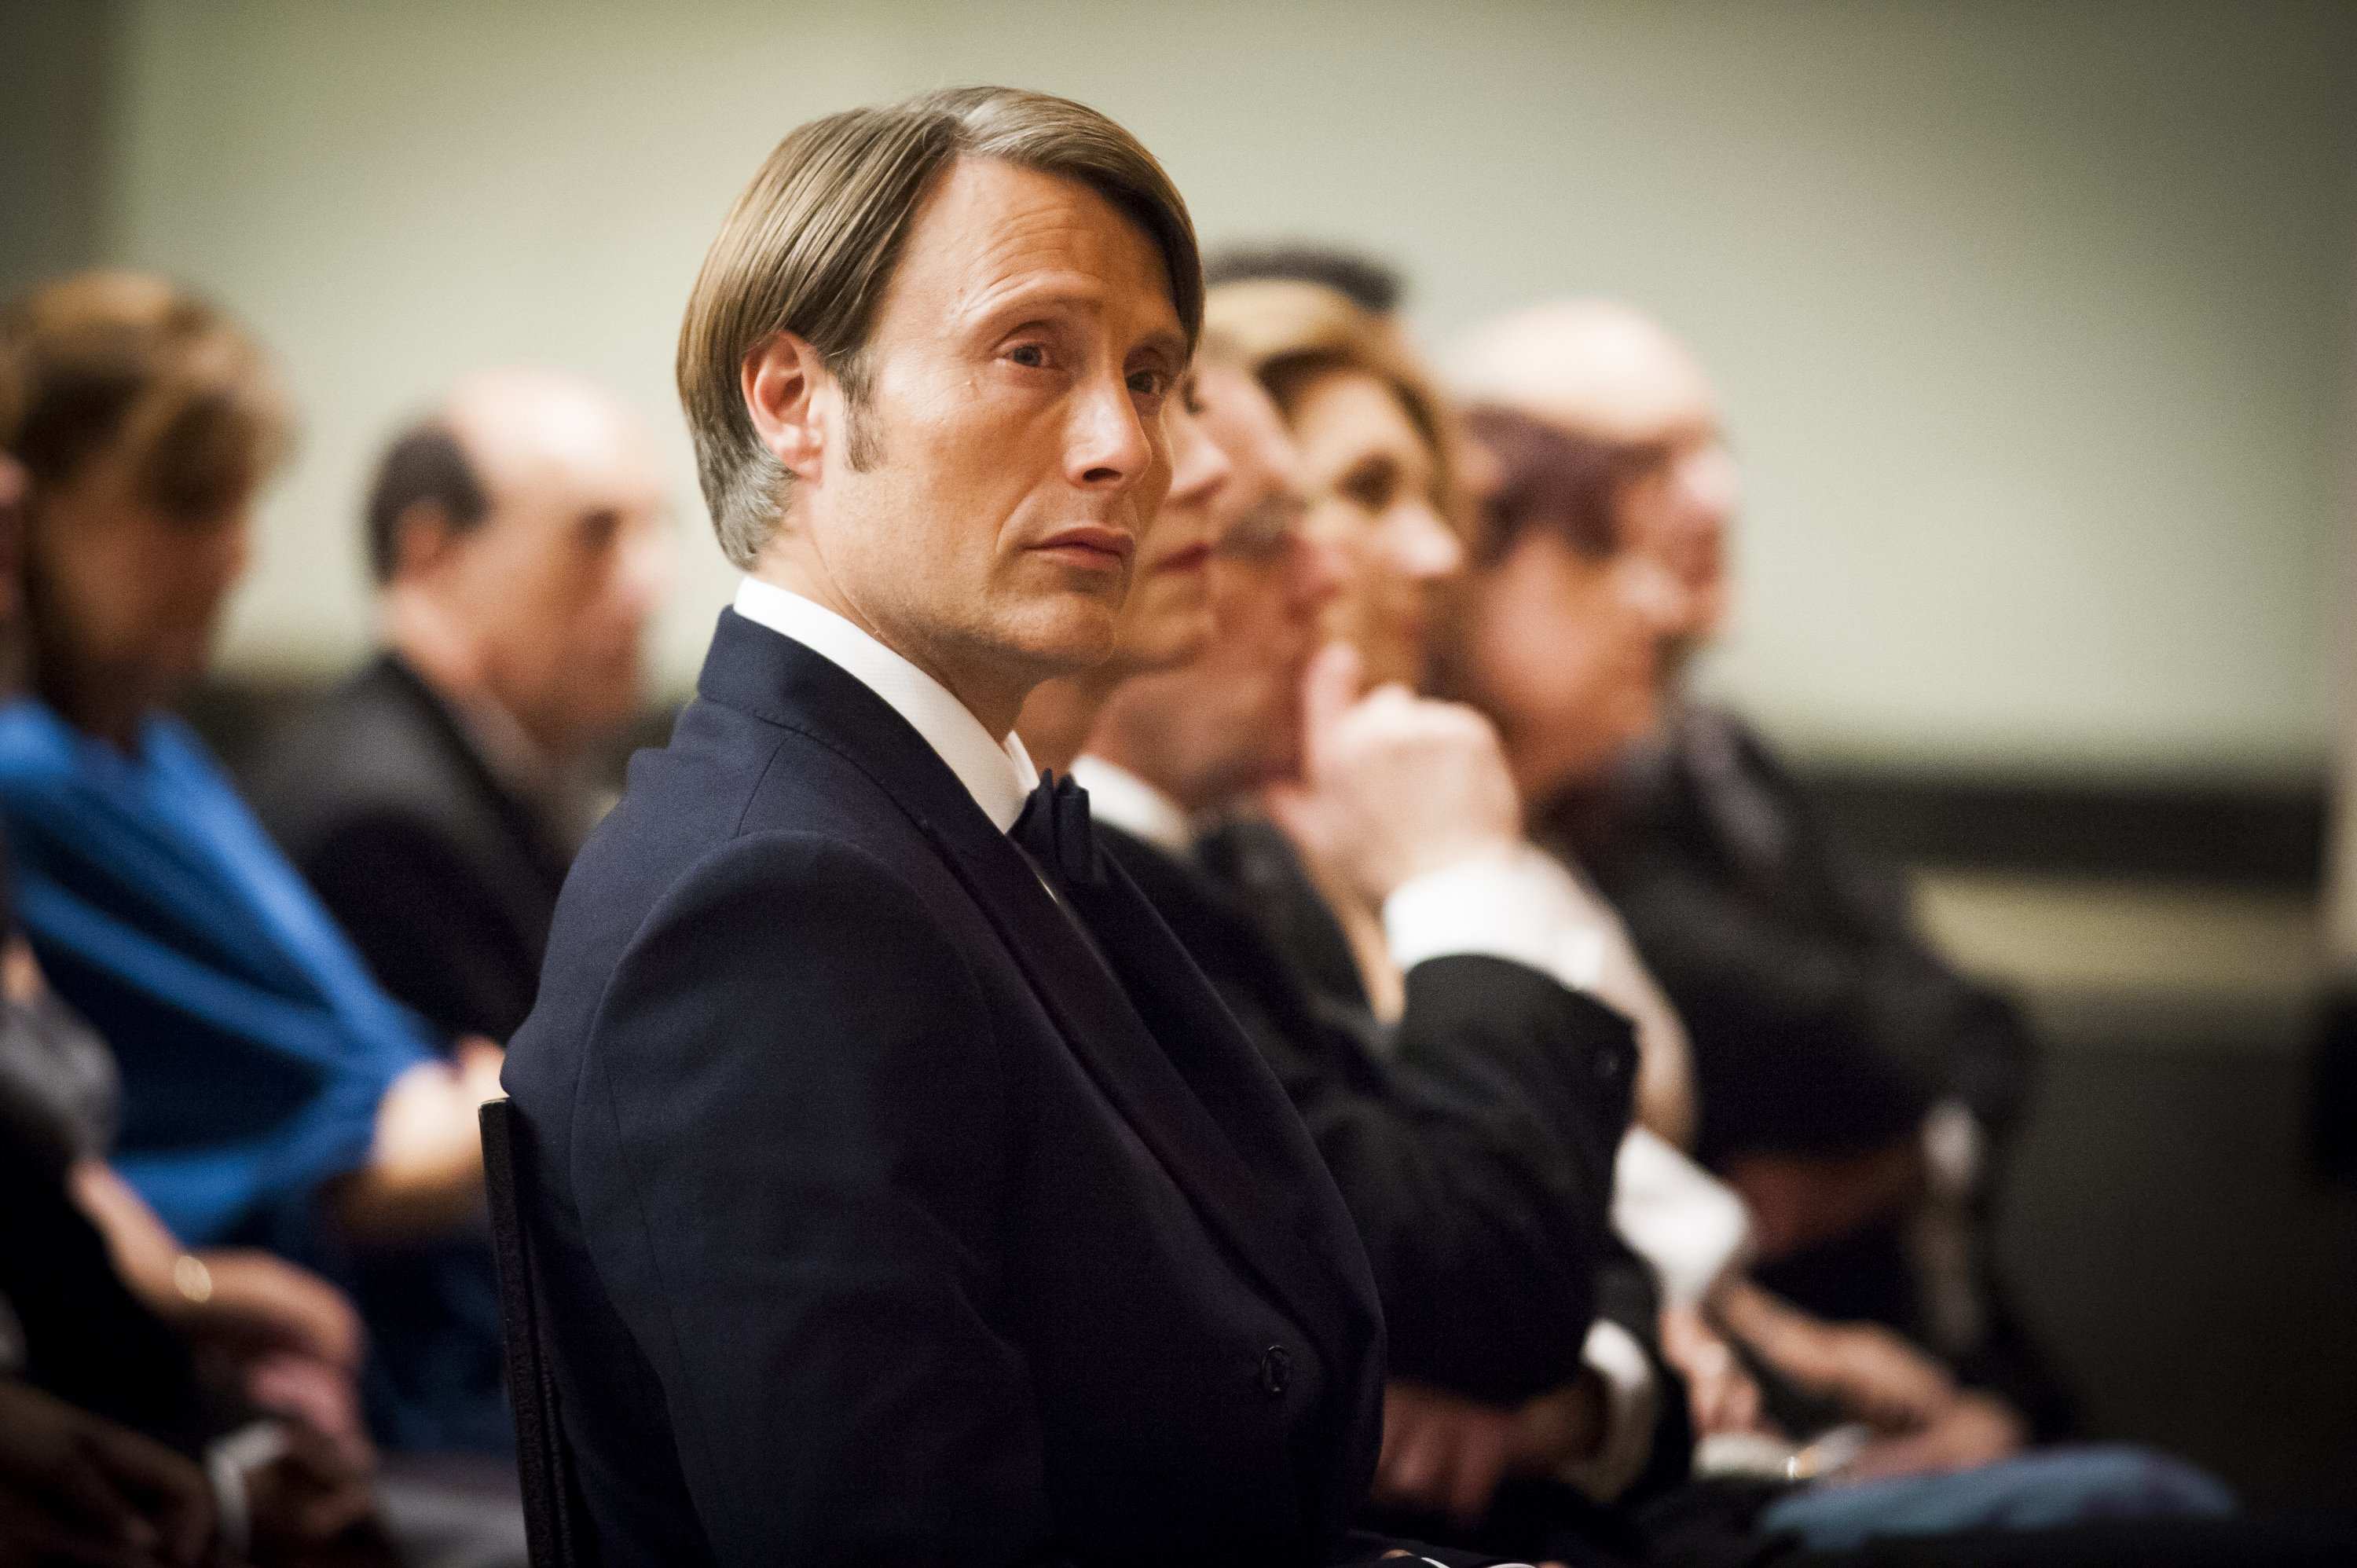 Hannibal options expire for cast of cancelled show but canceled tv shows tv series finale - Hannibal tv series actors ...